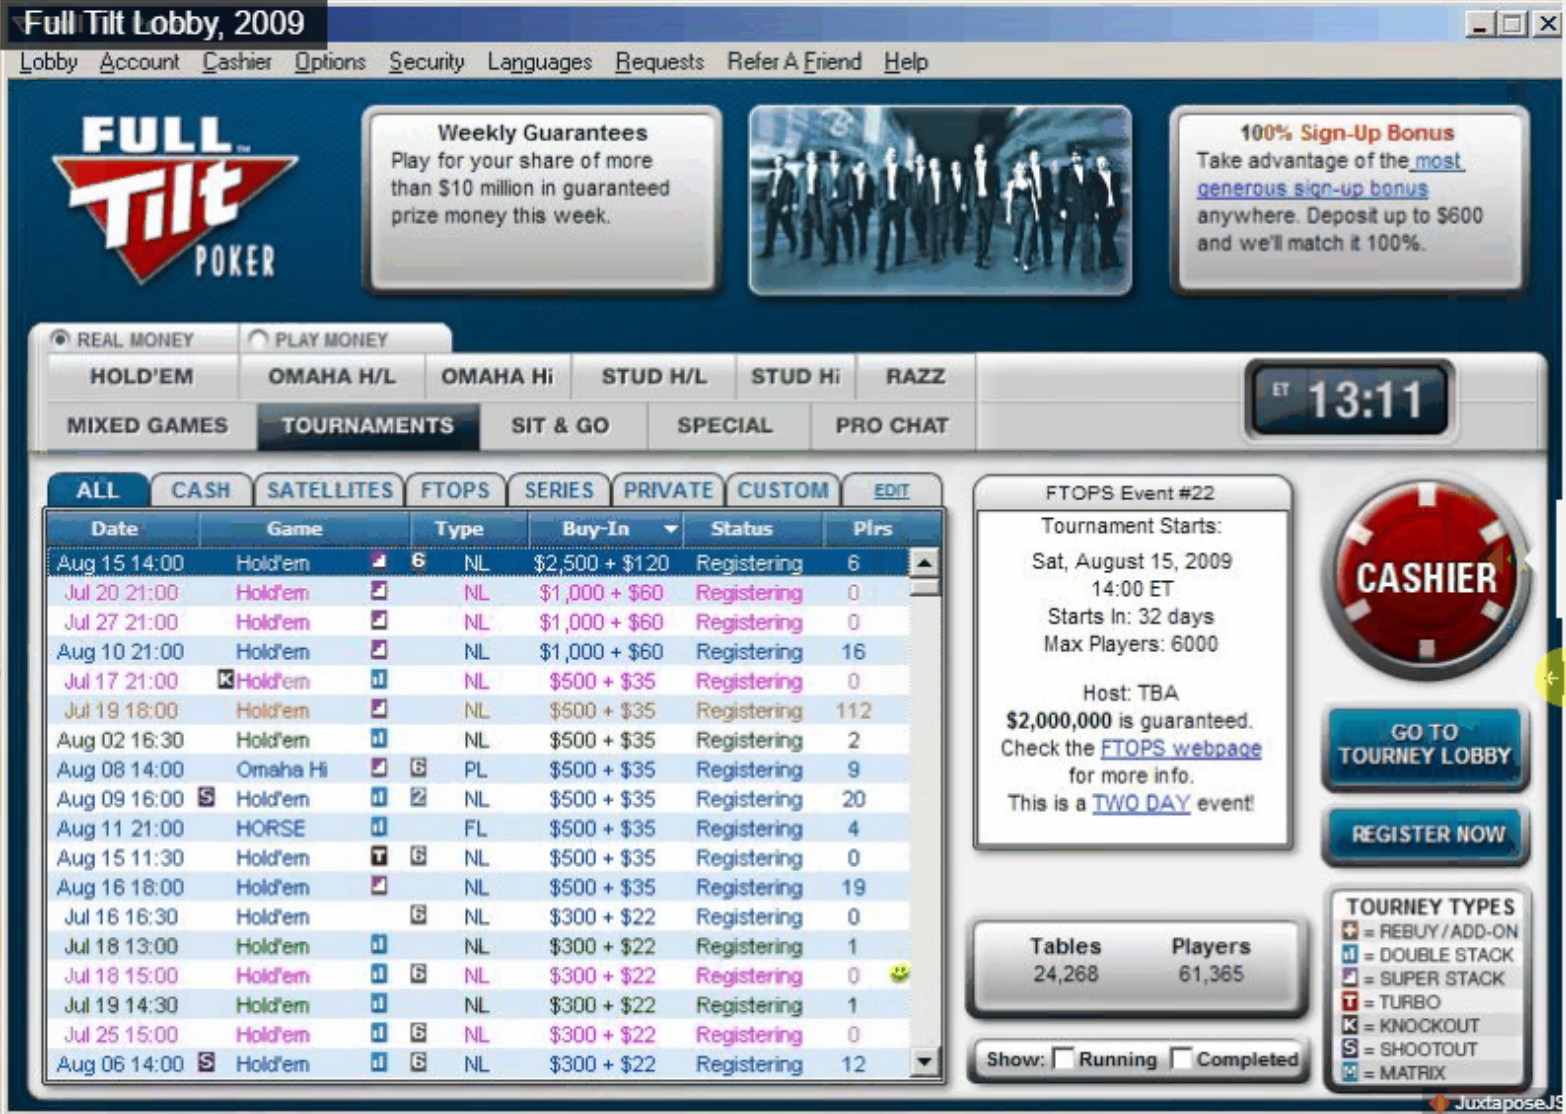 The Rise and Fall of Full Tilt Poker: How FTP Shaped the Online Poker Industry